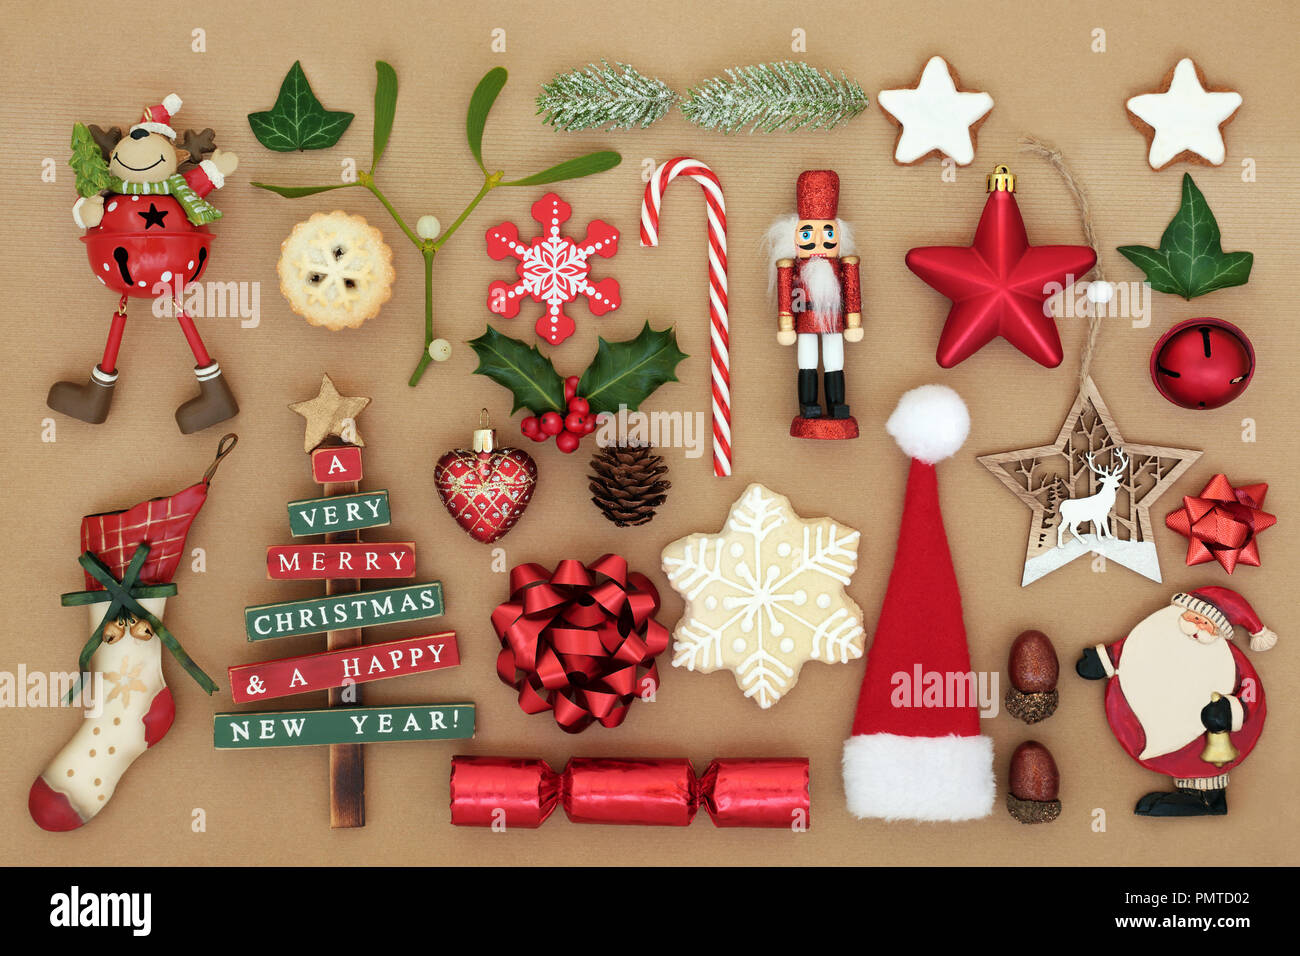 Old Fashioned Christmas Tree Decorations And Baubles With Winter Flora Food And Traditional Symbols On Brown Paper Background Stock Photo Alamy